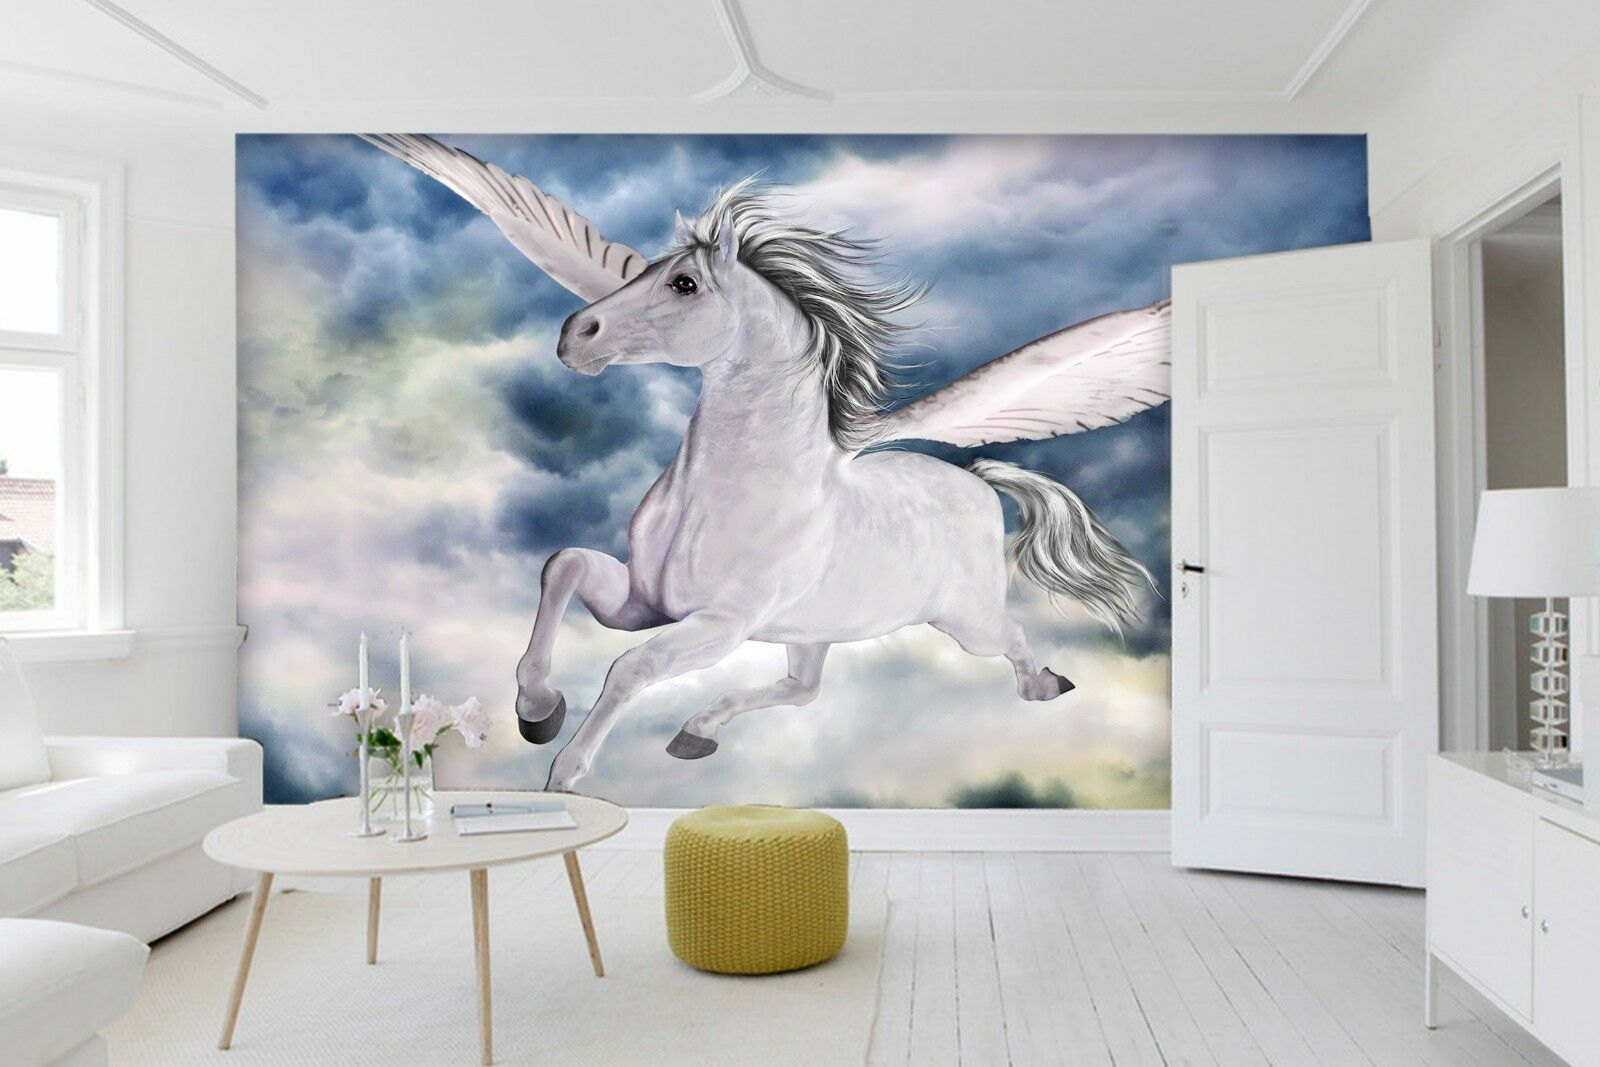 3D Flying Horse Painting 8 Wallpaper Mural Print Wall Indoor Wallpaper Murals UK